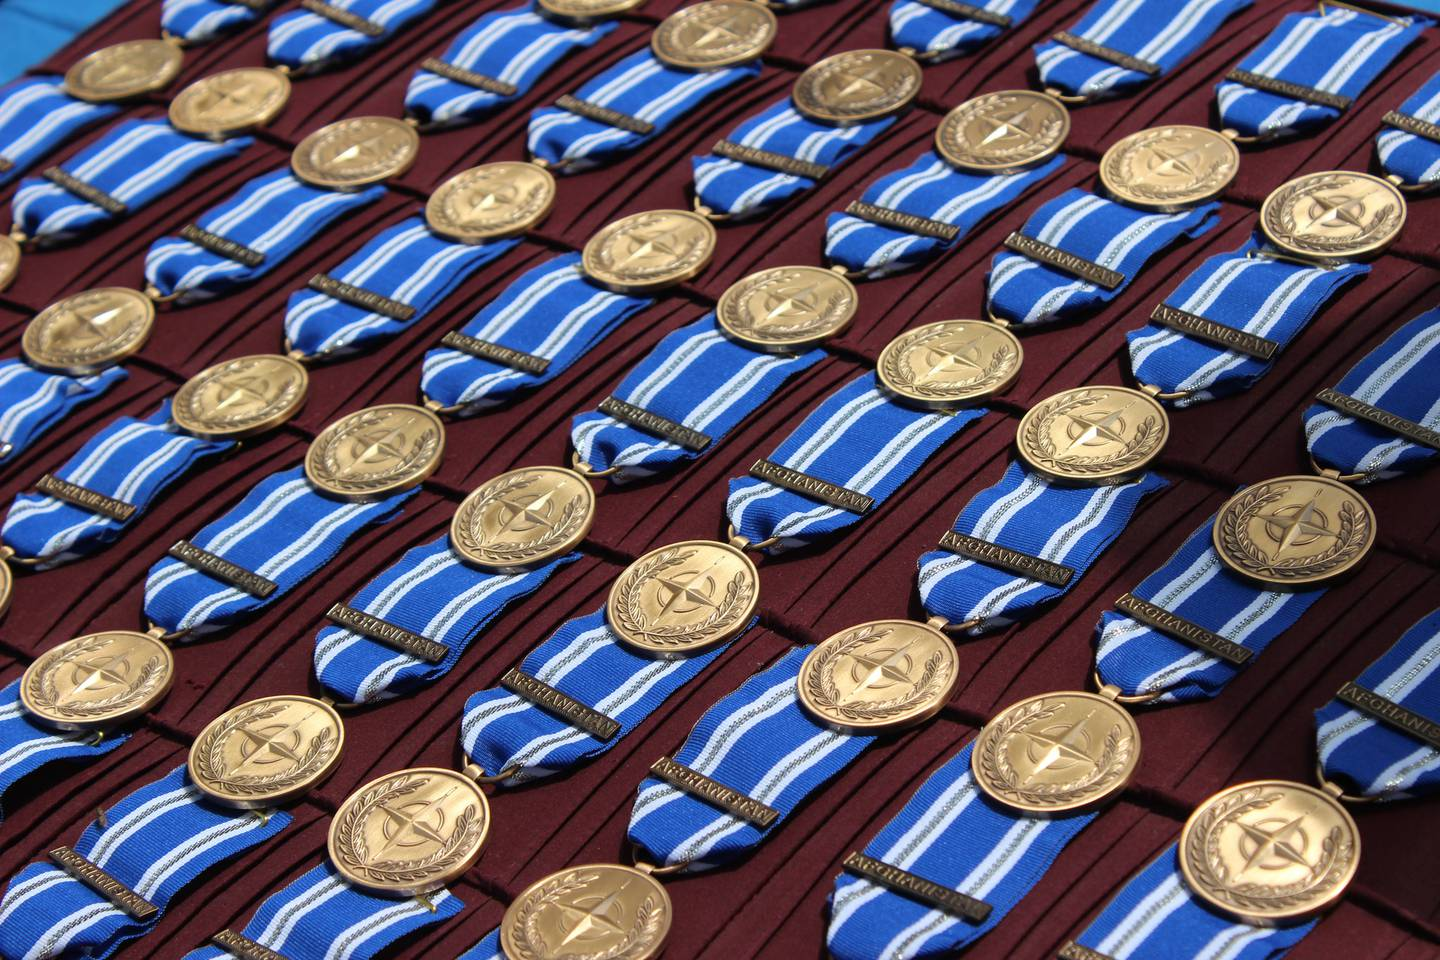 Resolute Support personnel receive NATO medals on April 27, 2016.